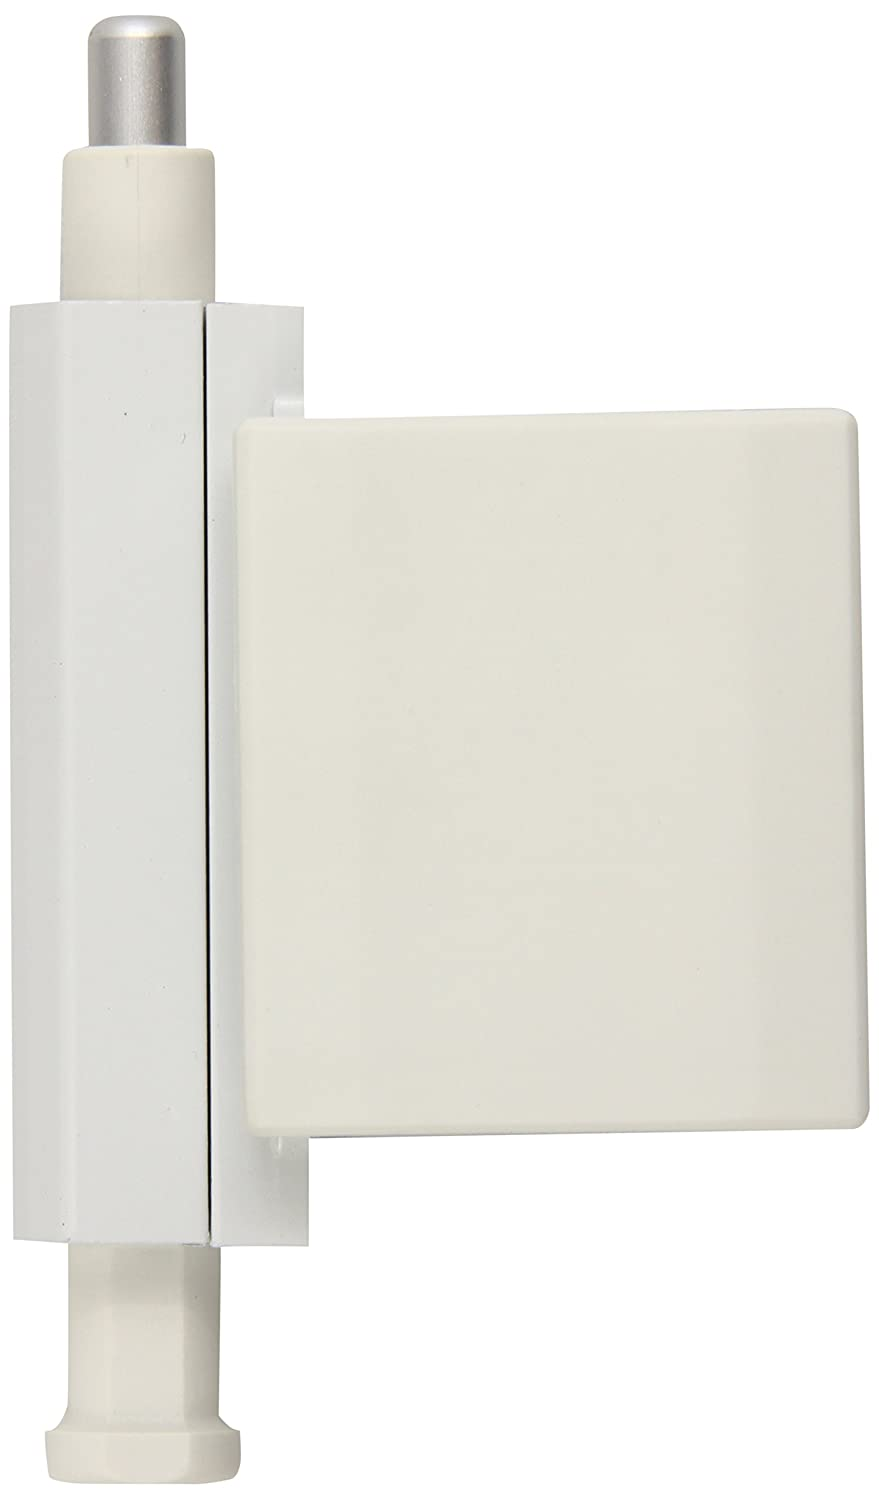 Amazon.com : Cardinal Gates Patio Door Guardian, White : Indoor Safety  Gates : Baby